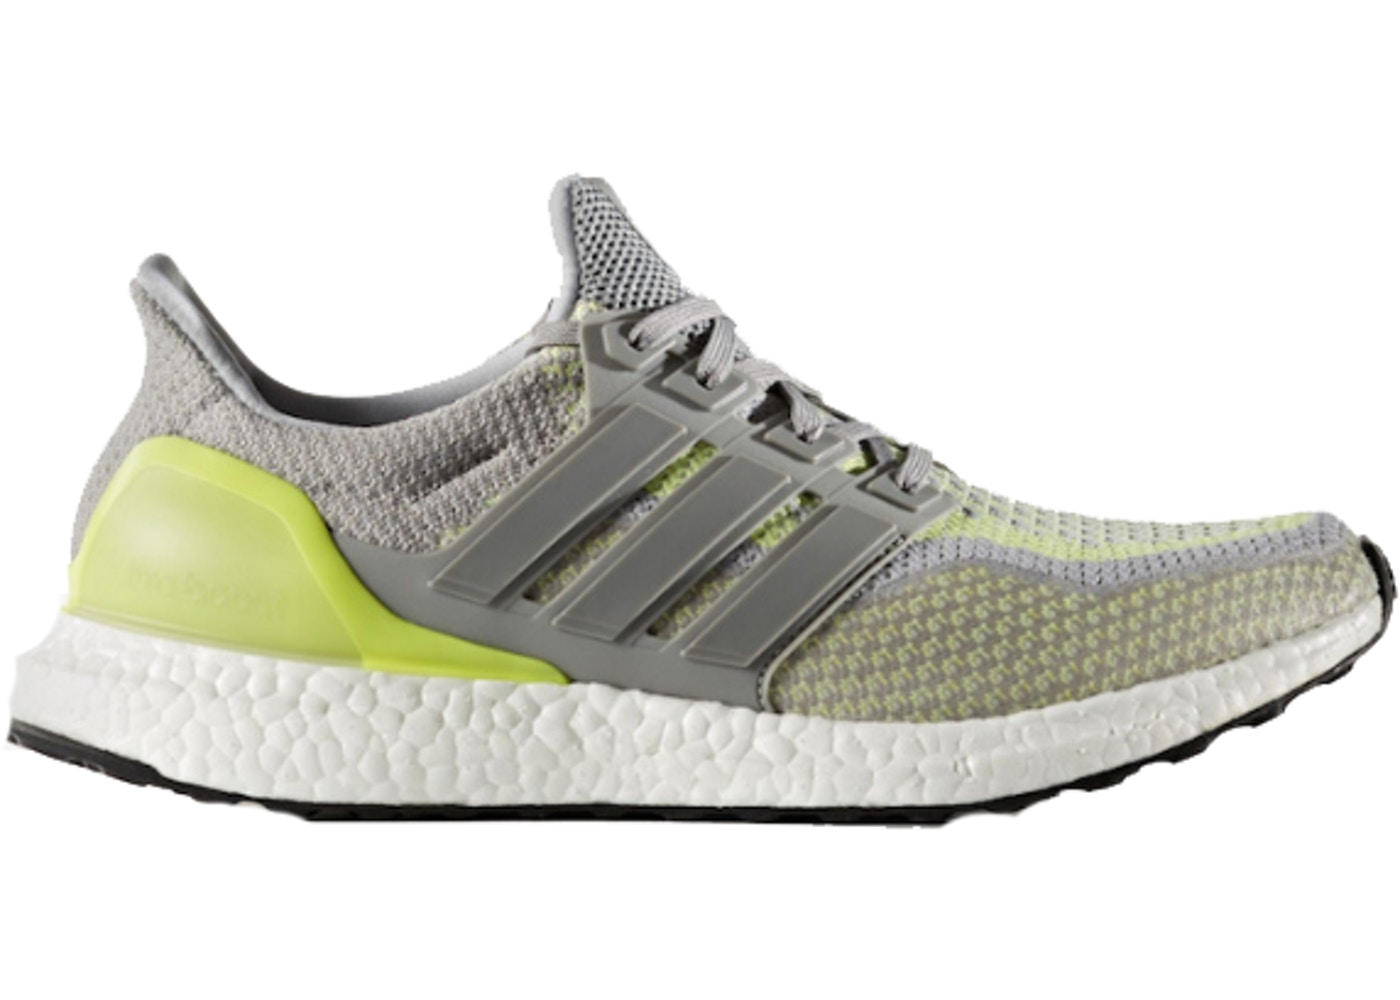 Adidas Ultra Boost 20 ATR Glow In The Dark